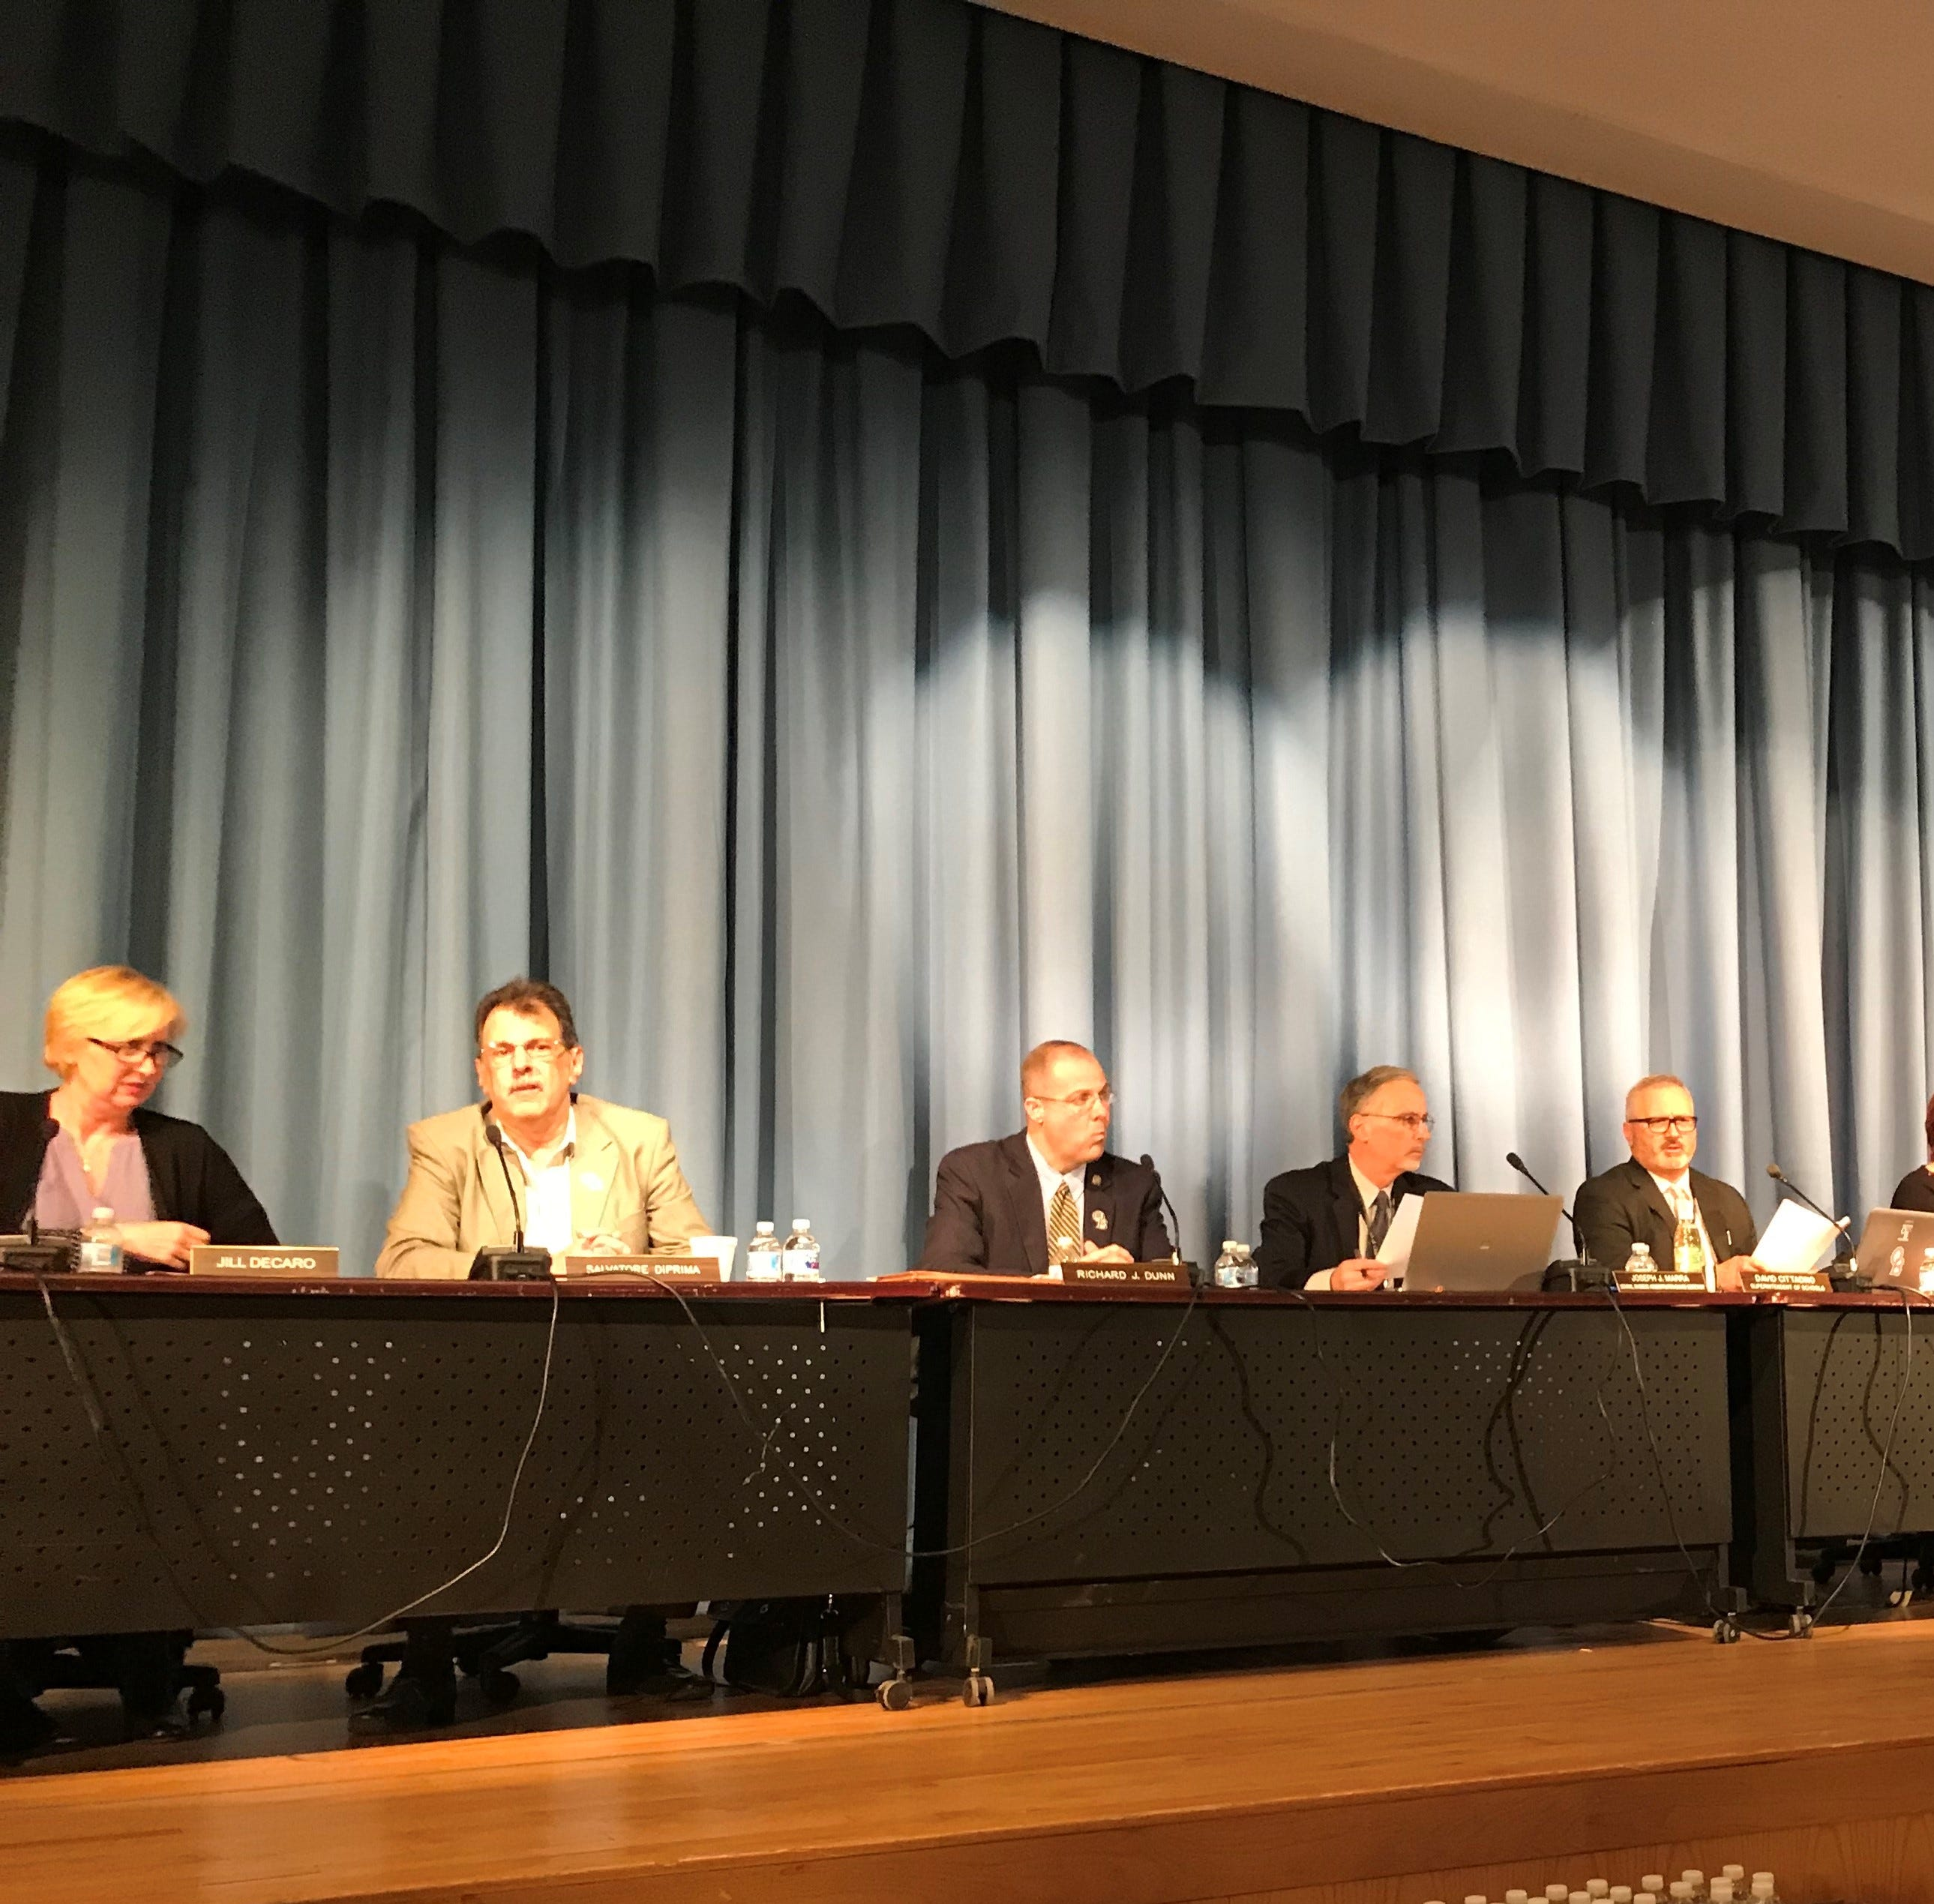 Old Bridge schools: Paraprofessionals won't be outsourced in latest budget proposal